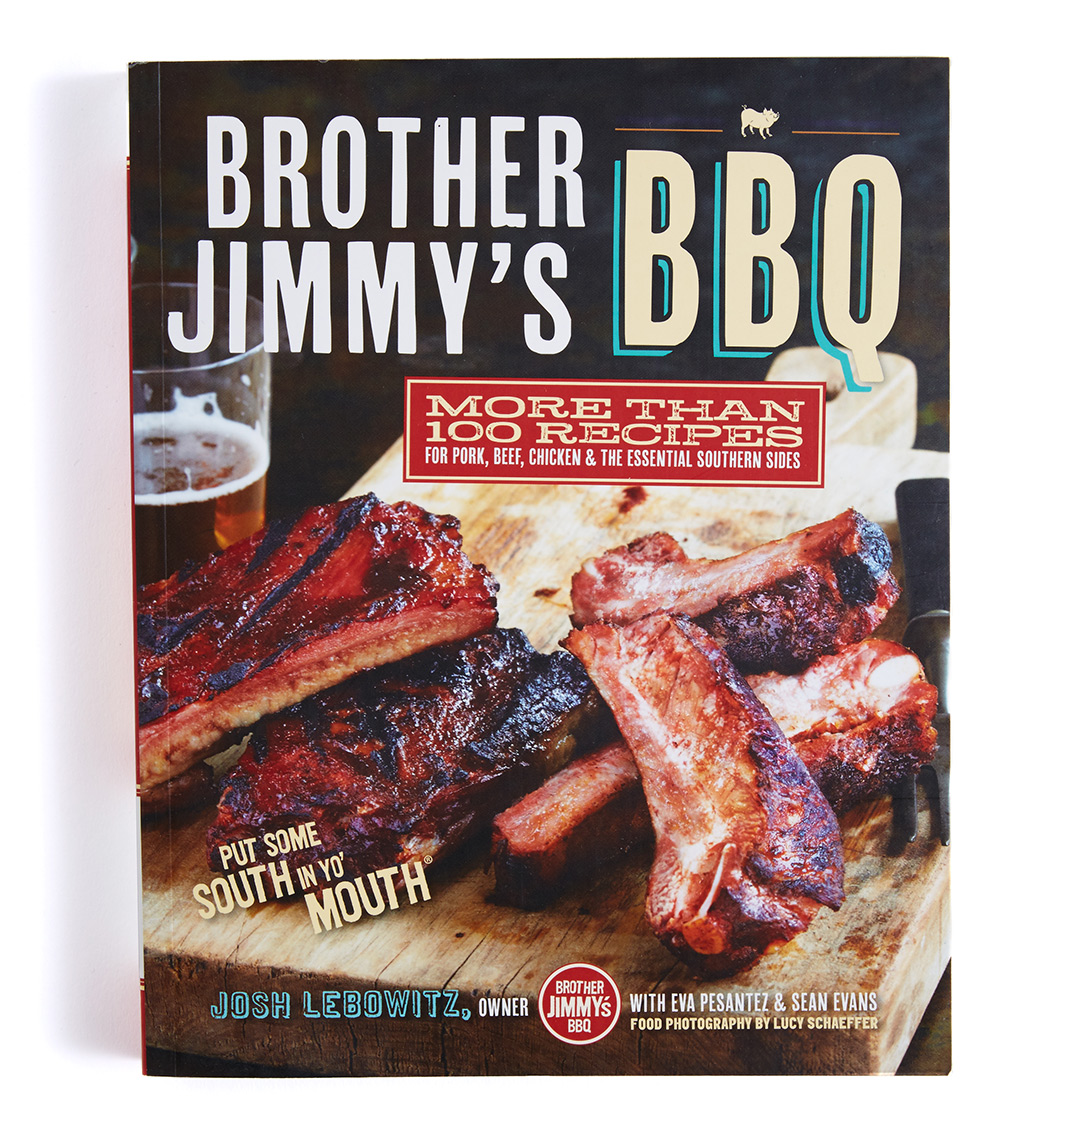 BrotherJimmysBBQ_002rt